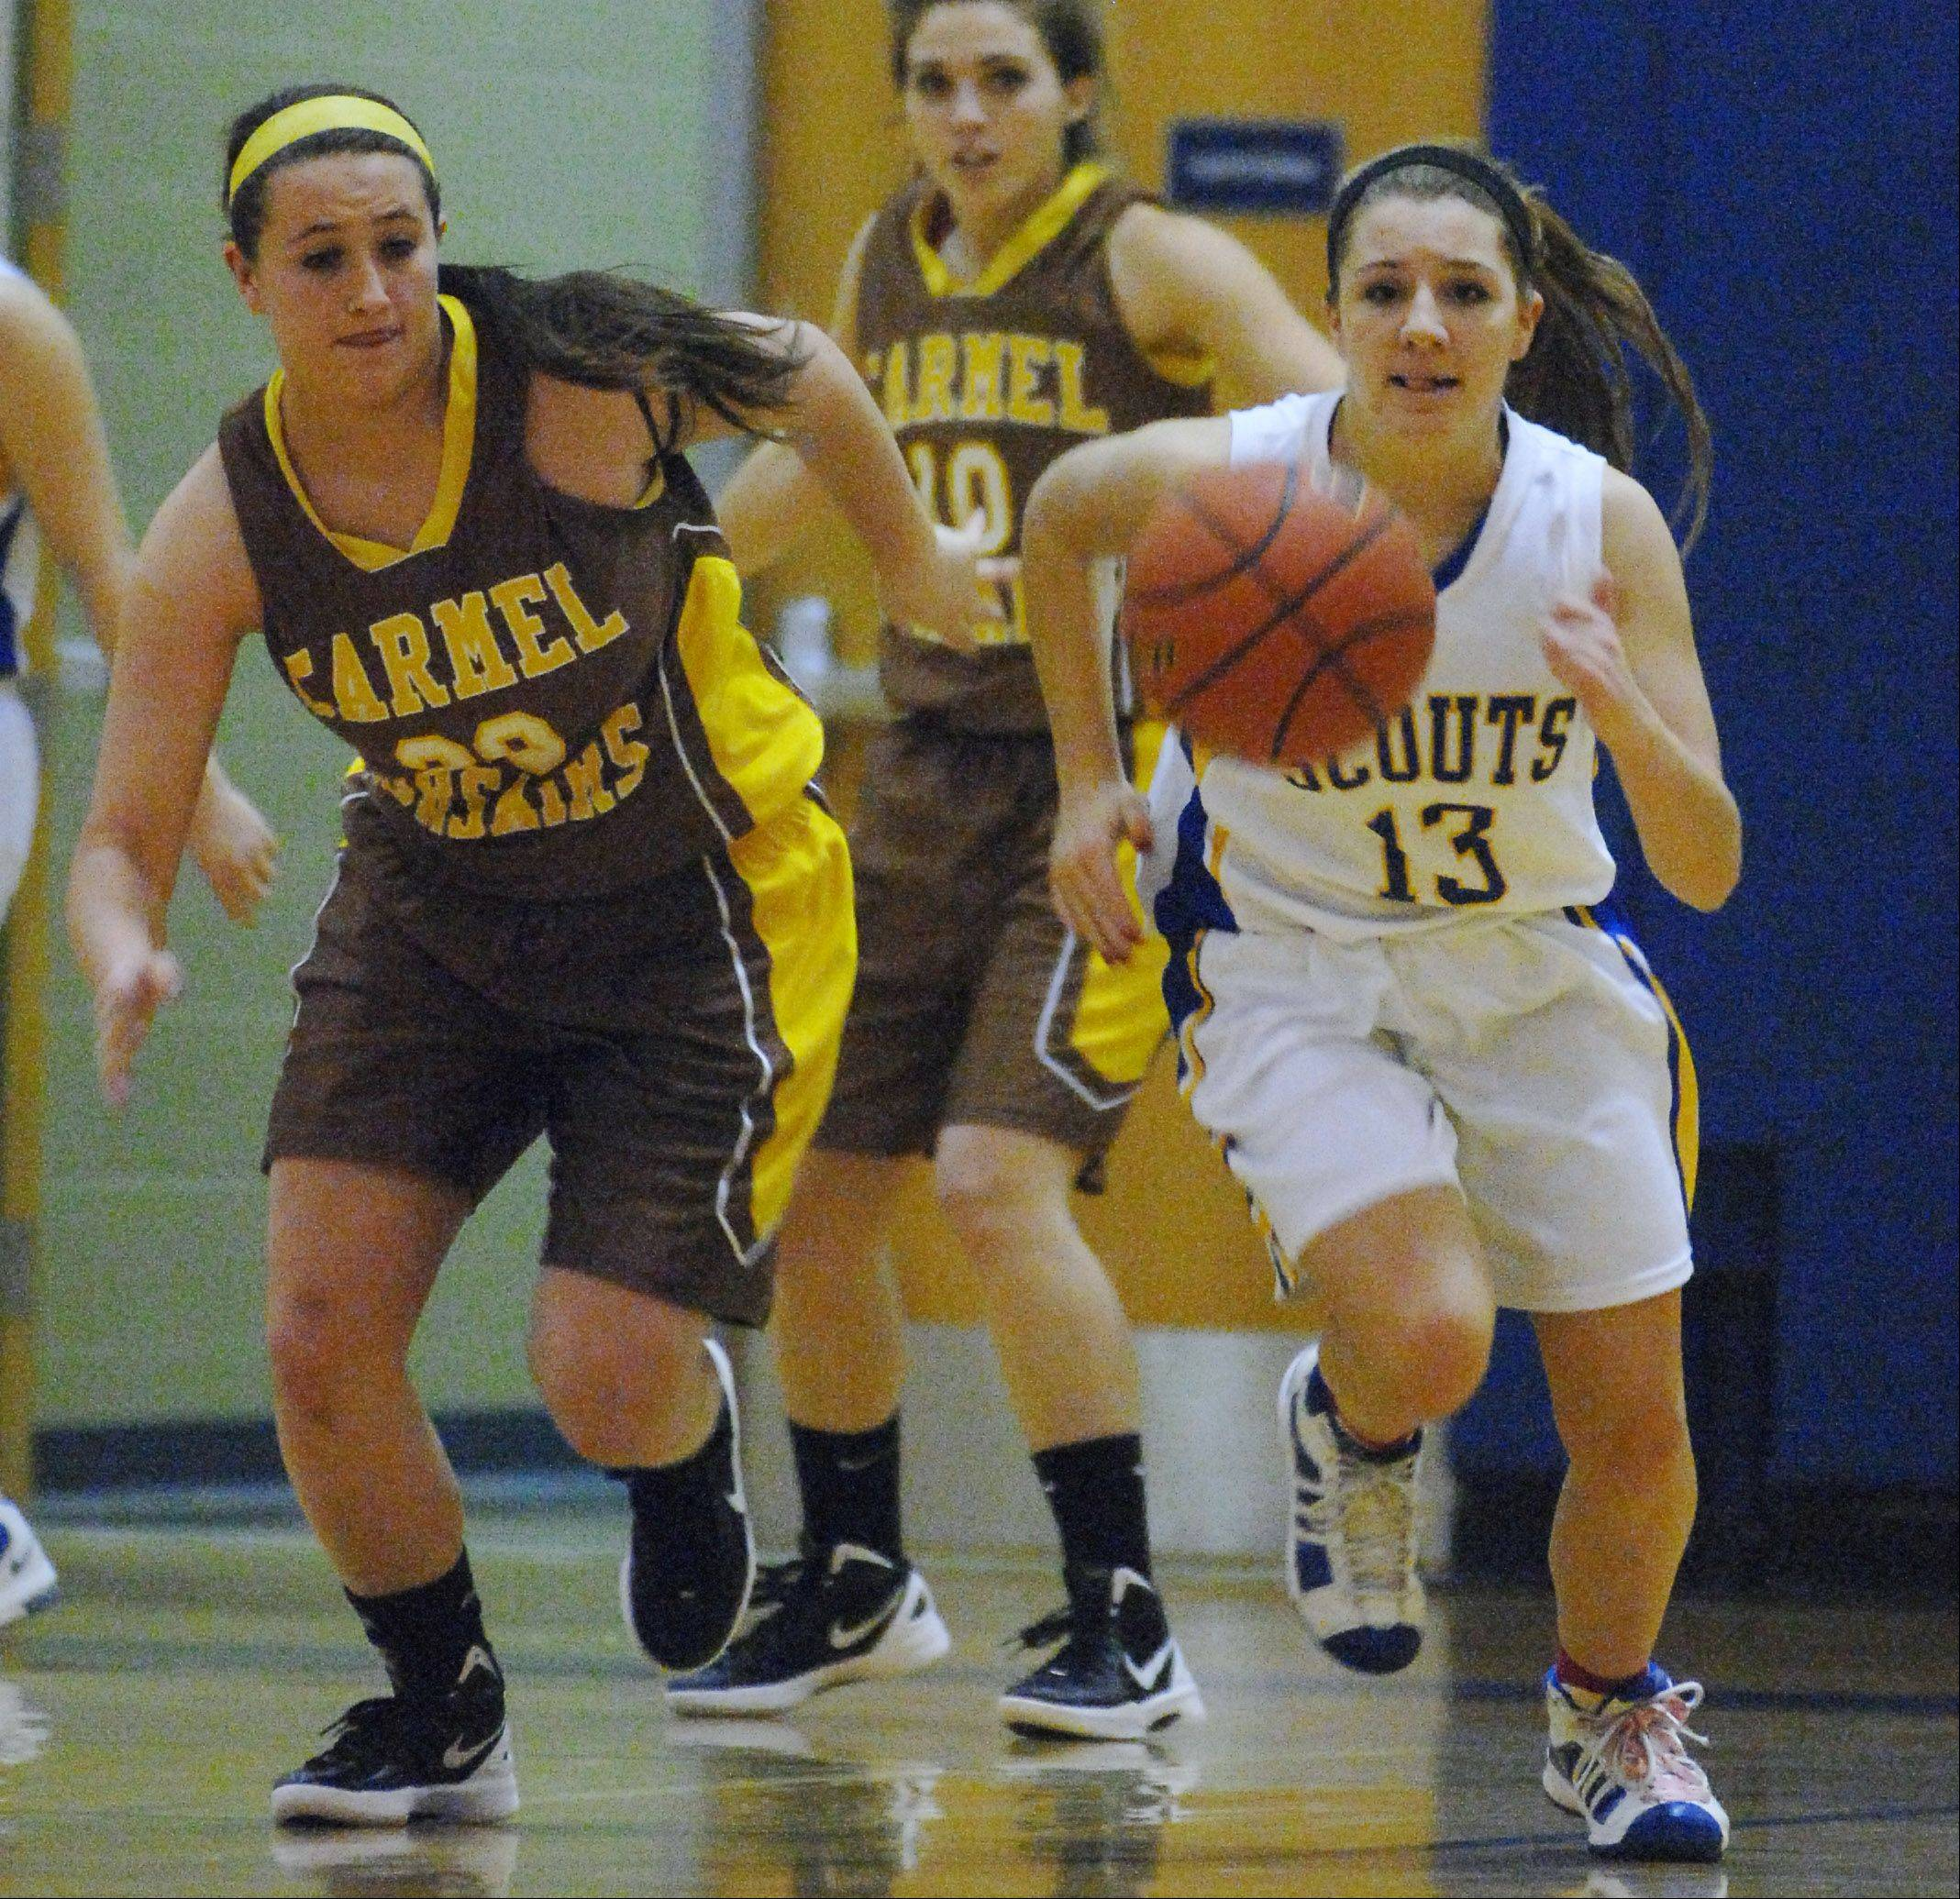 Carmel's Jackie Meier, left, chases down a loose ball with Lake Forest's Gabby Perino during Monday's Blue Devil Classic basketball game in Gurnee.